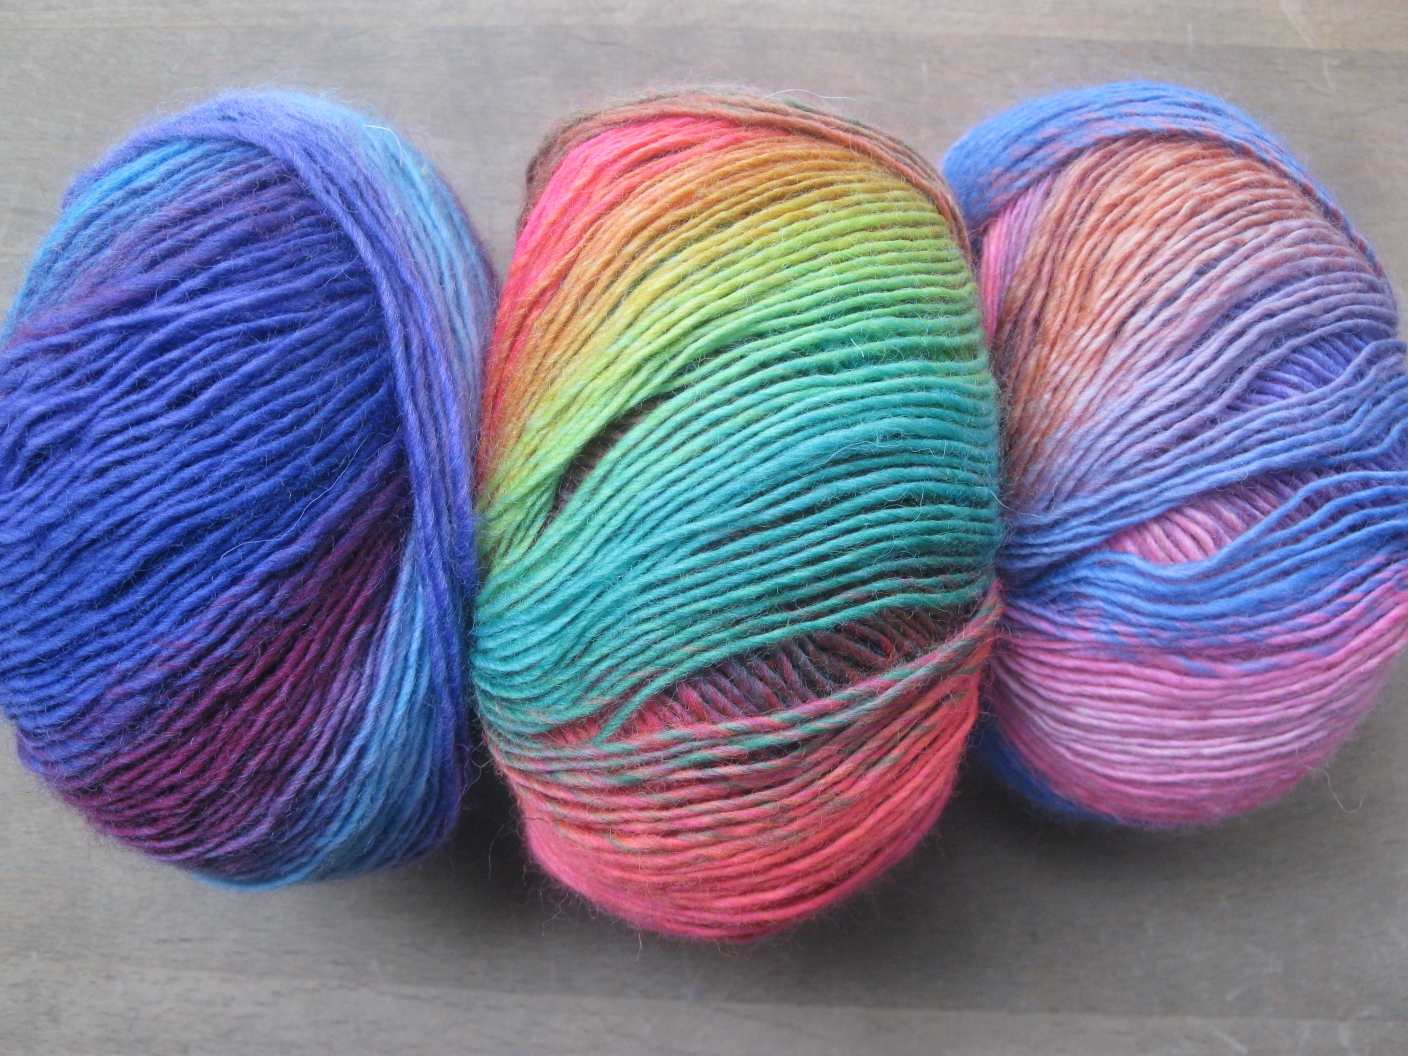 this is the lange mille colori baby a bit more colorful - Laine Lang Mille Colori Baby